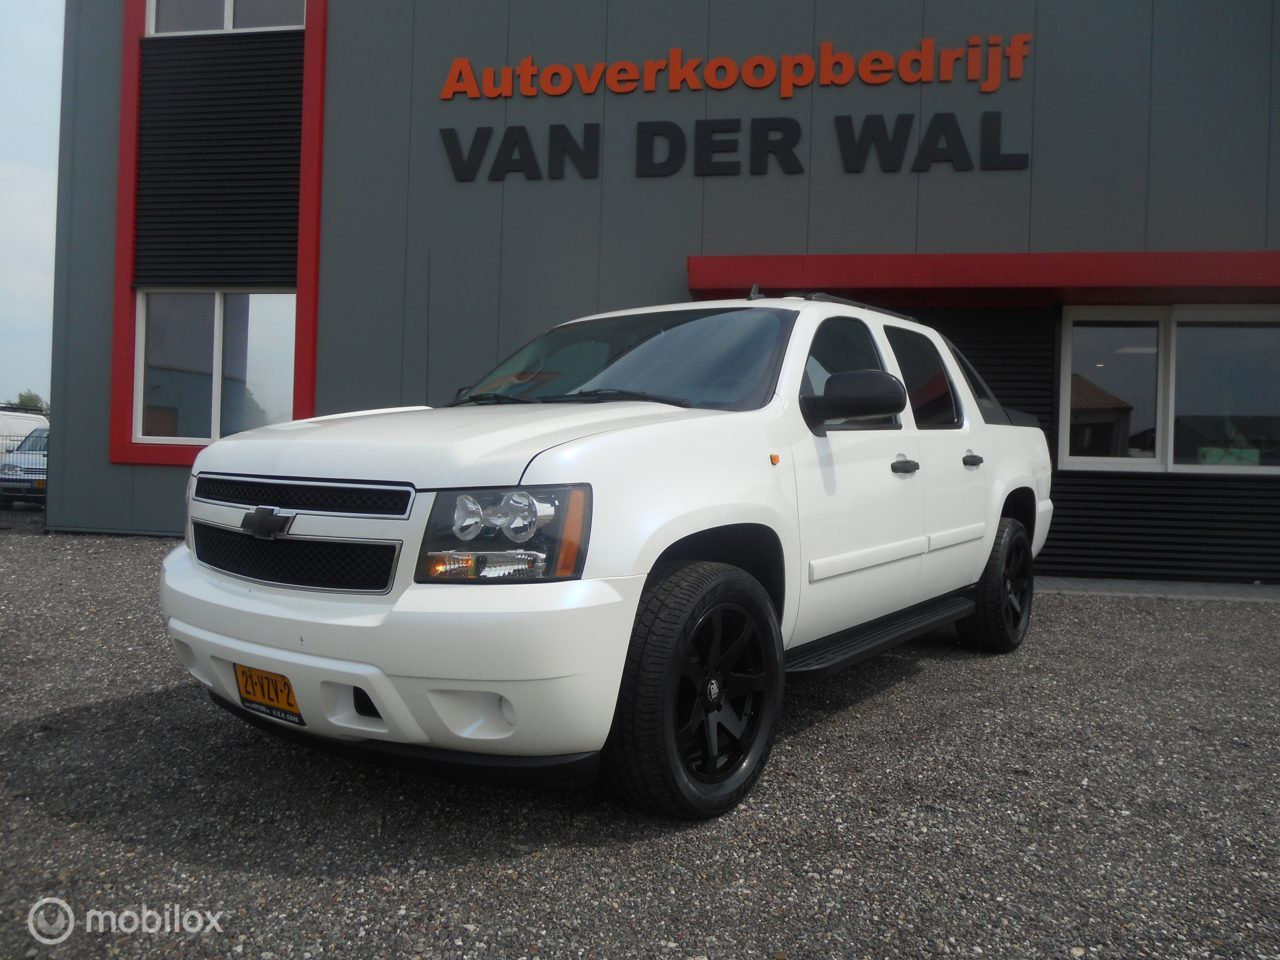 Chevrolet Avalanche - USA 5.3 V8 2WD WIT PARELMOER GEWRAPTE/IN PERFECTE STAAT